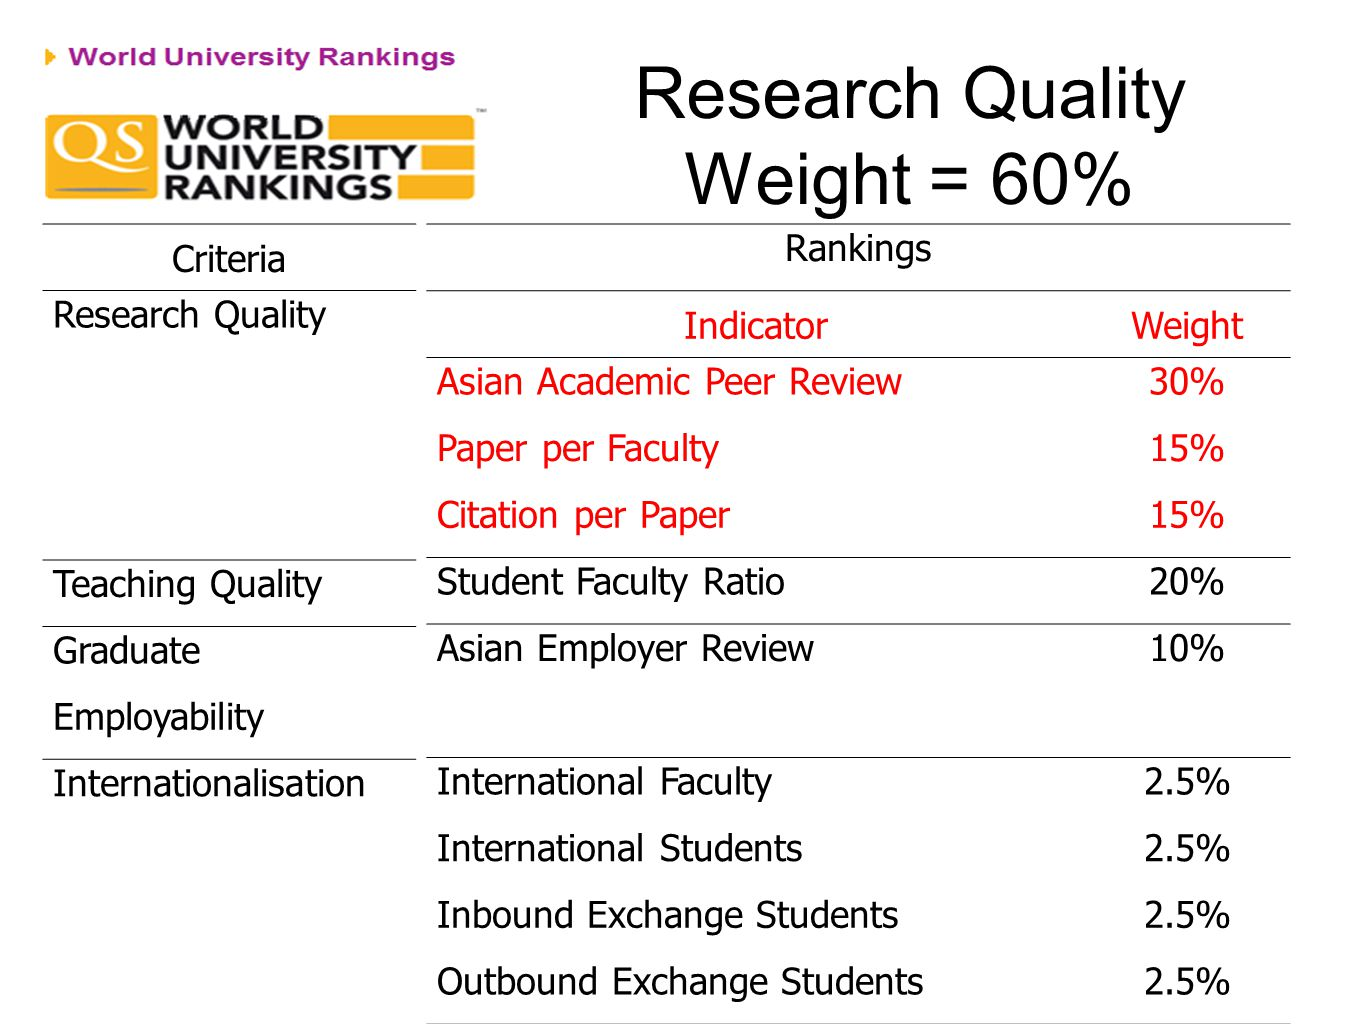 Research Quality Weight = 60%